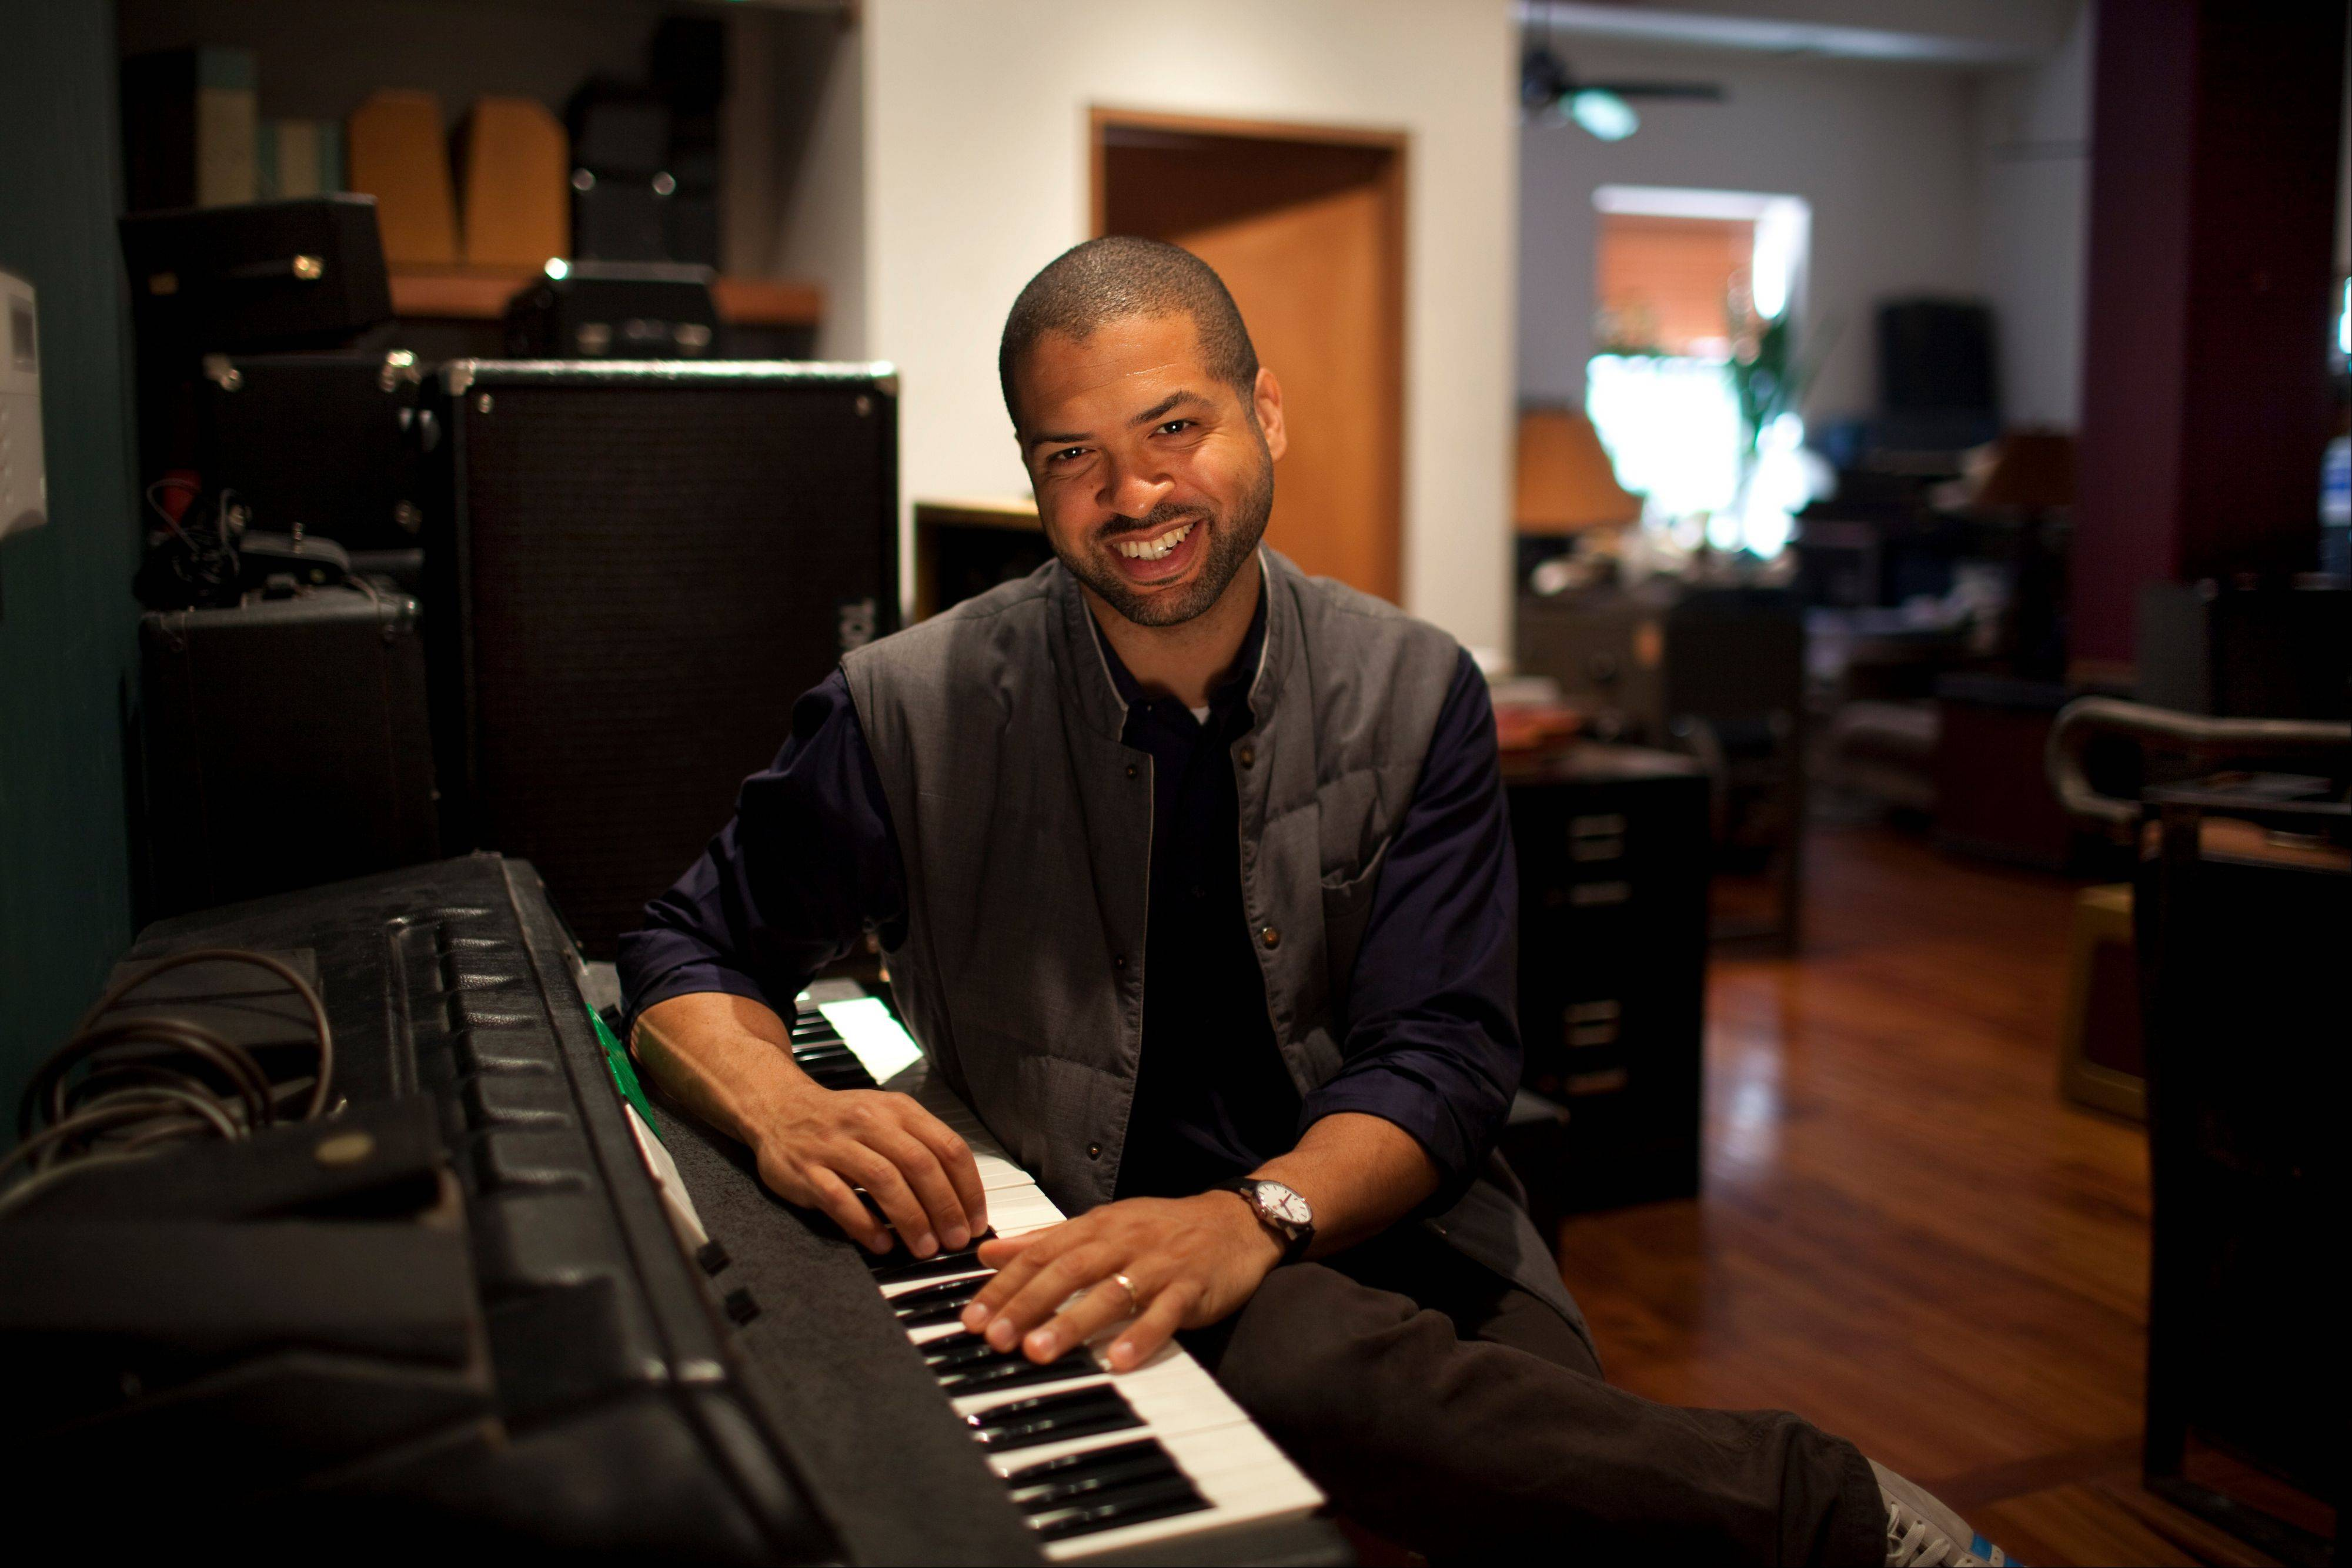 Jazz pianist and composer Jason Moran is set to appear at the Chicago Jazz Festival on Saturday, Aug. 31.